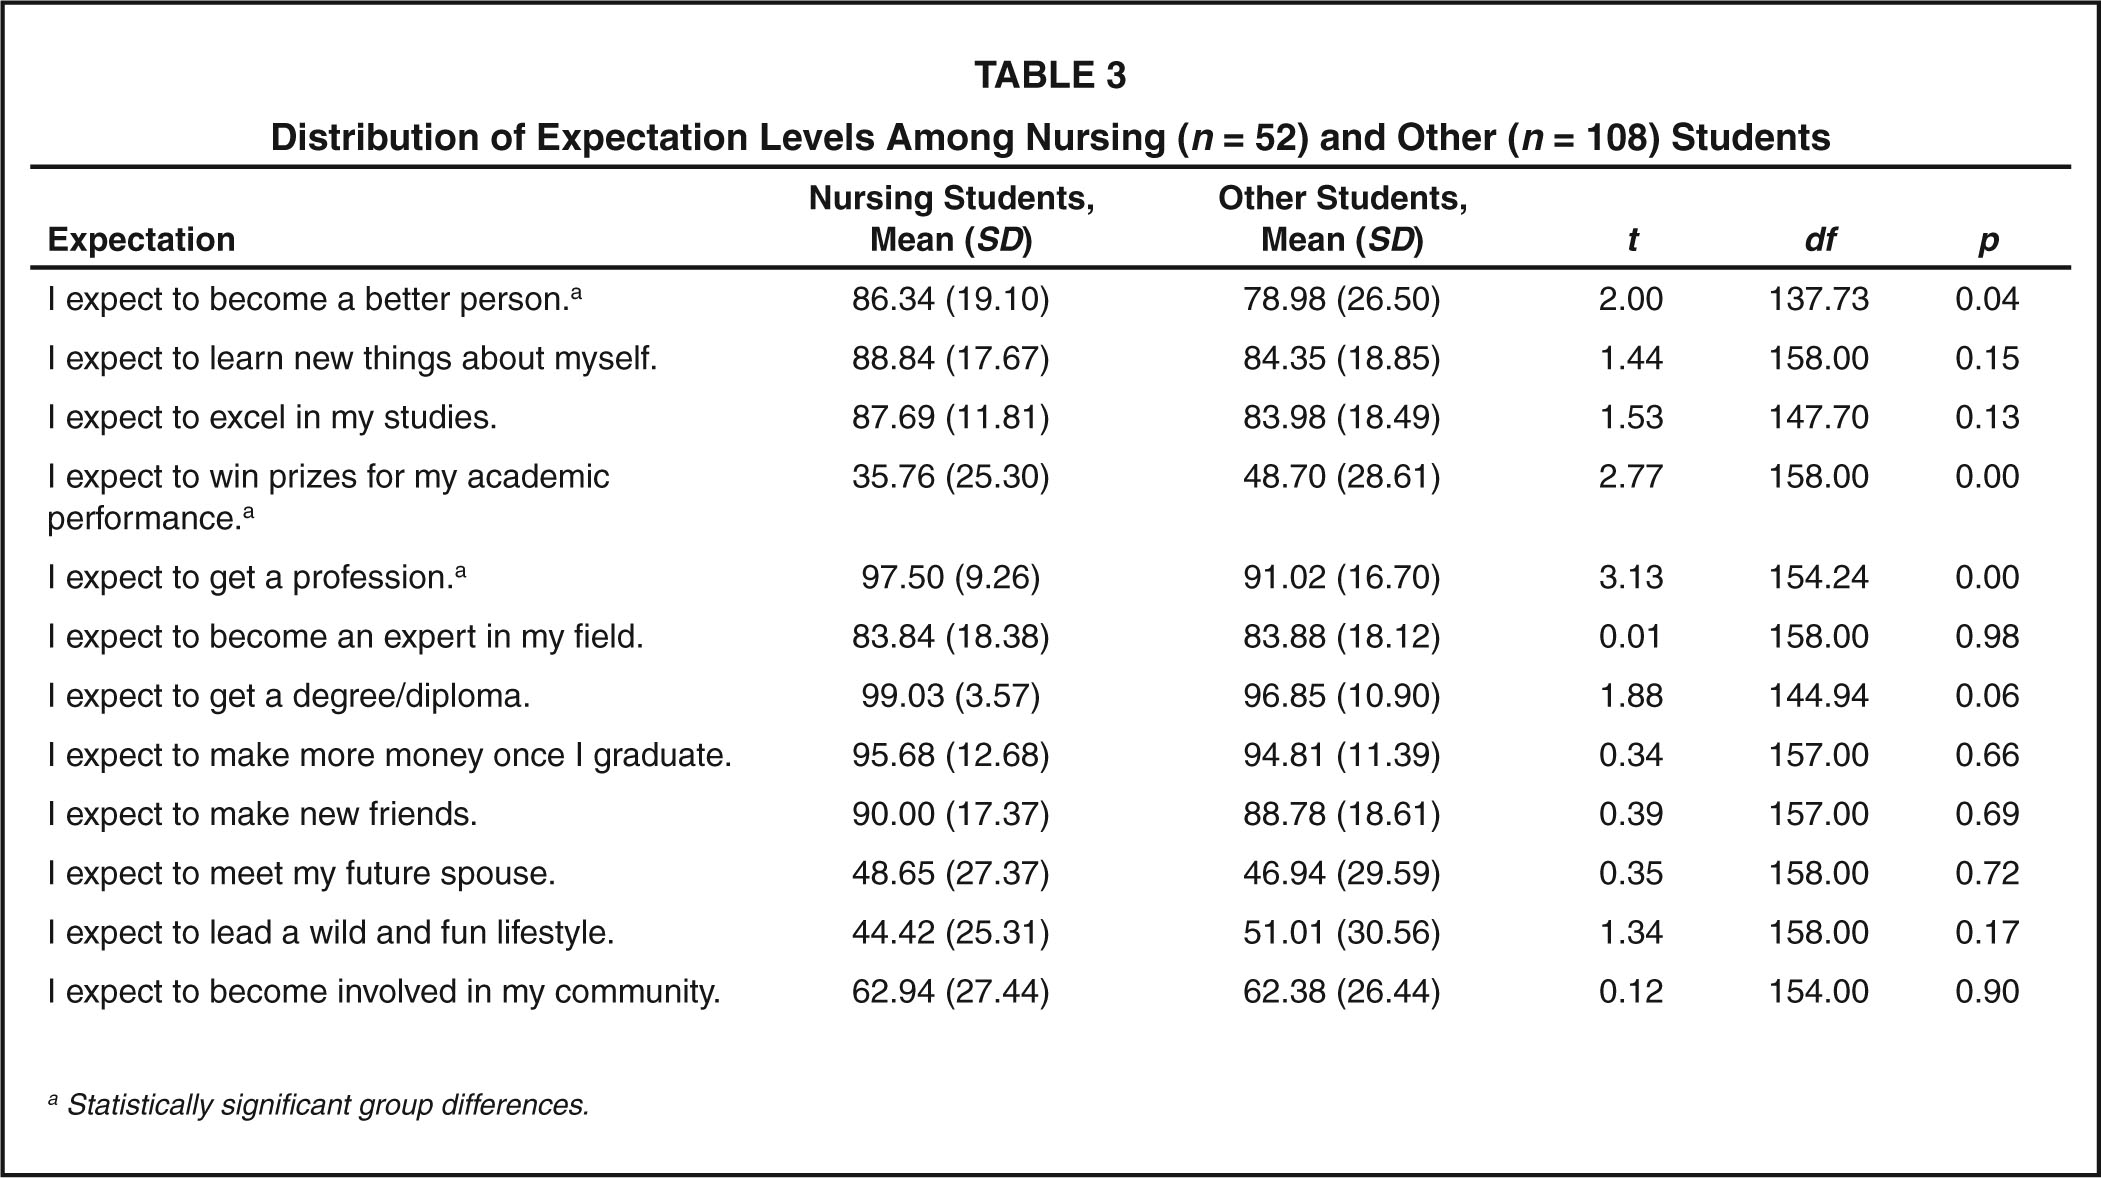 Distribution of Expectation Levels Among Nursing (n = 52) and Other (n = 108) Students